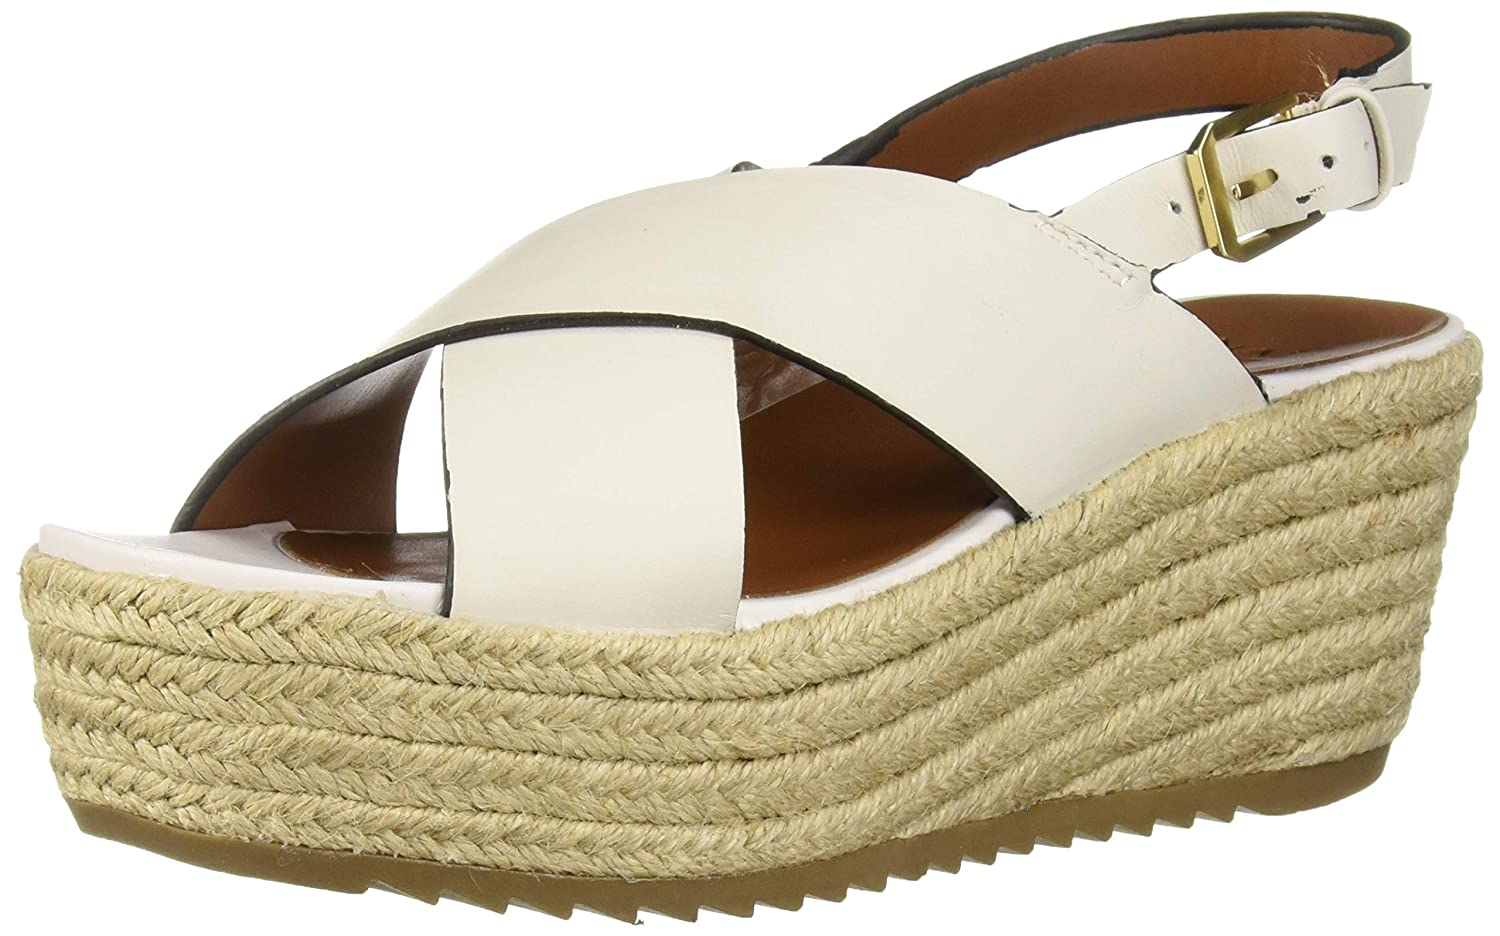 35c25f87ee1 Naturalizer Women's Oak Espadrille Wedge Sandal